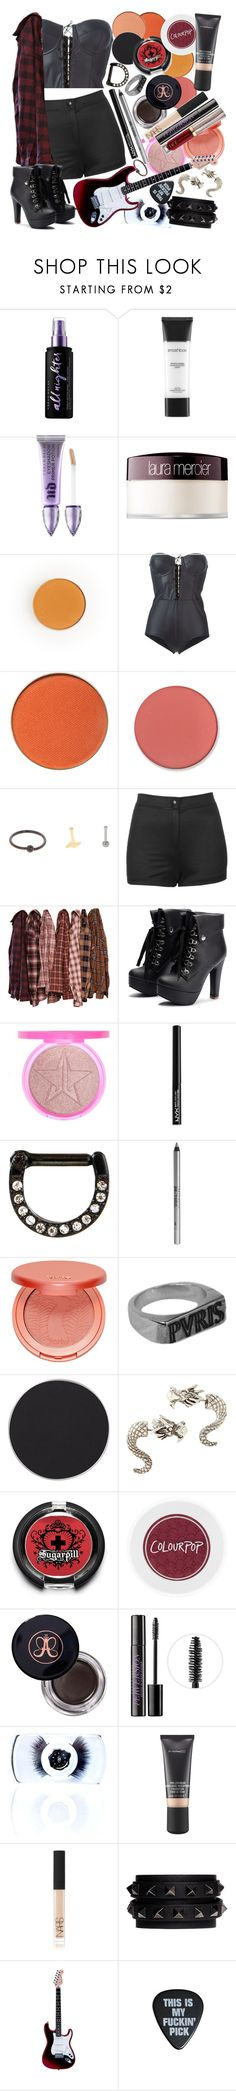 """And I'm back with a madness- I'm a champion, of the people who don't believe in champions- I got nothing but dreams inside"" by thelyricsmatter ❤ liked on Polyvore featuring Urban Decay, Smashbox, Laura Mercier, Kitx, Hot Topic, Topshop, NYX, tarte, Anastasia Beverly Hills and Sugarpill"